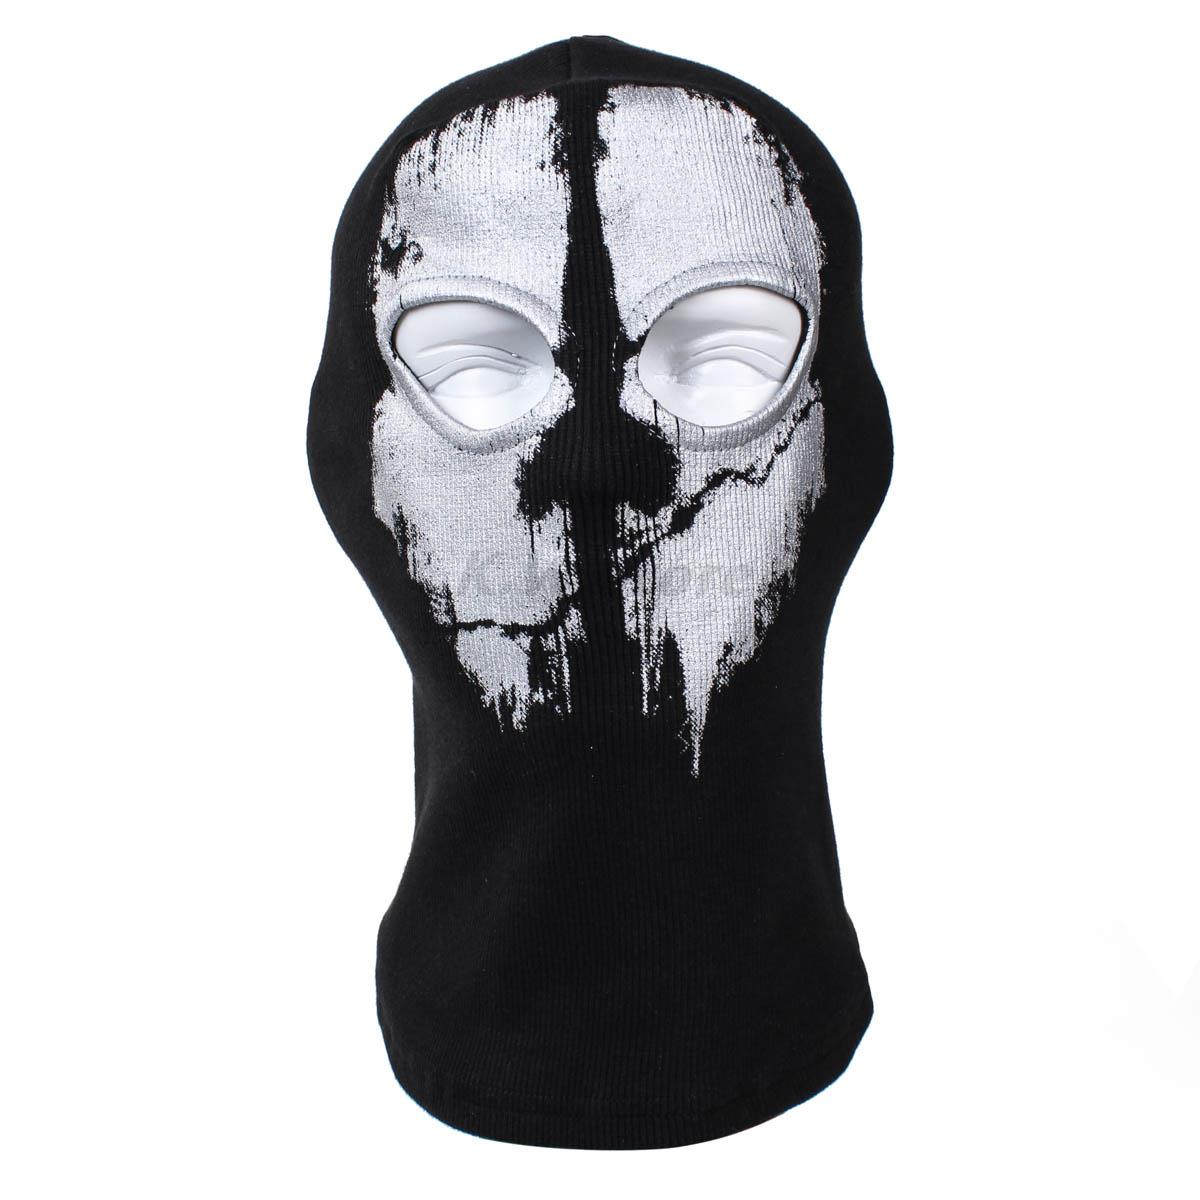 Winter Forest Skeleton Head Counter-terrorism Mission Call Equipment Grimace Warm Ghost Mask Outdoor Offset Printing Unisex islam between jihad and terrorism